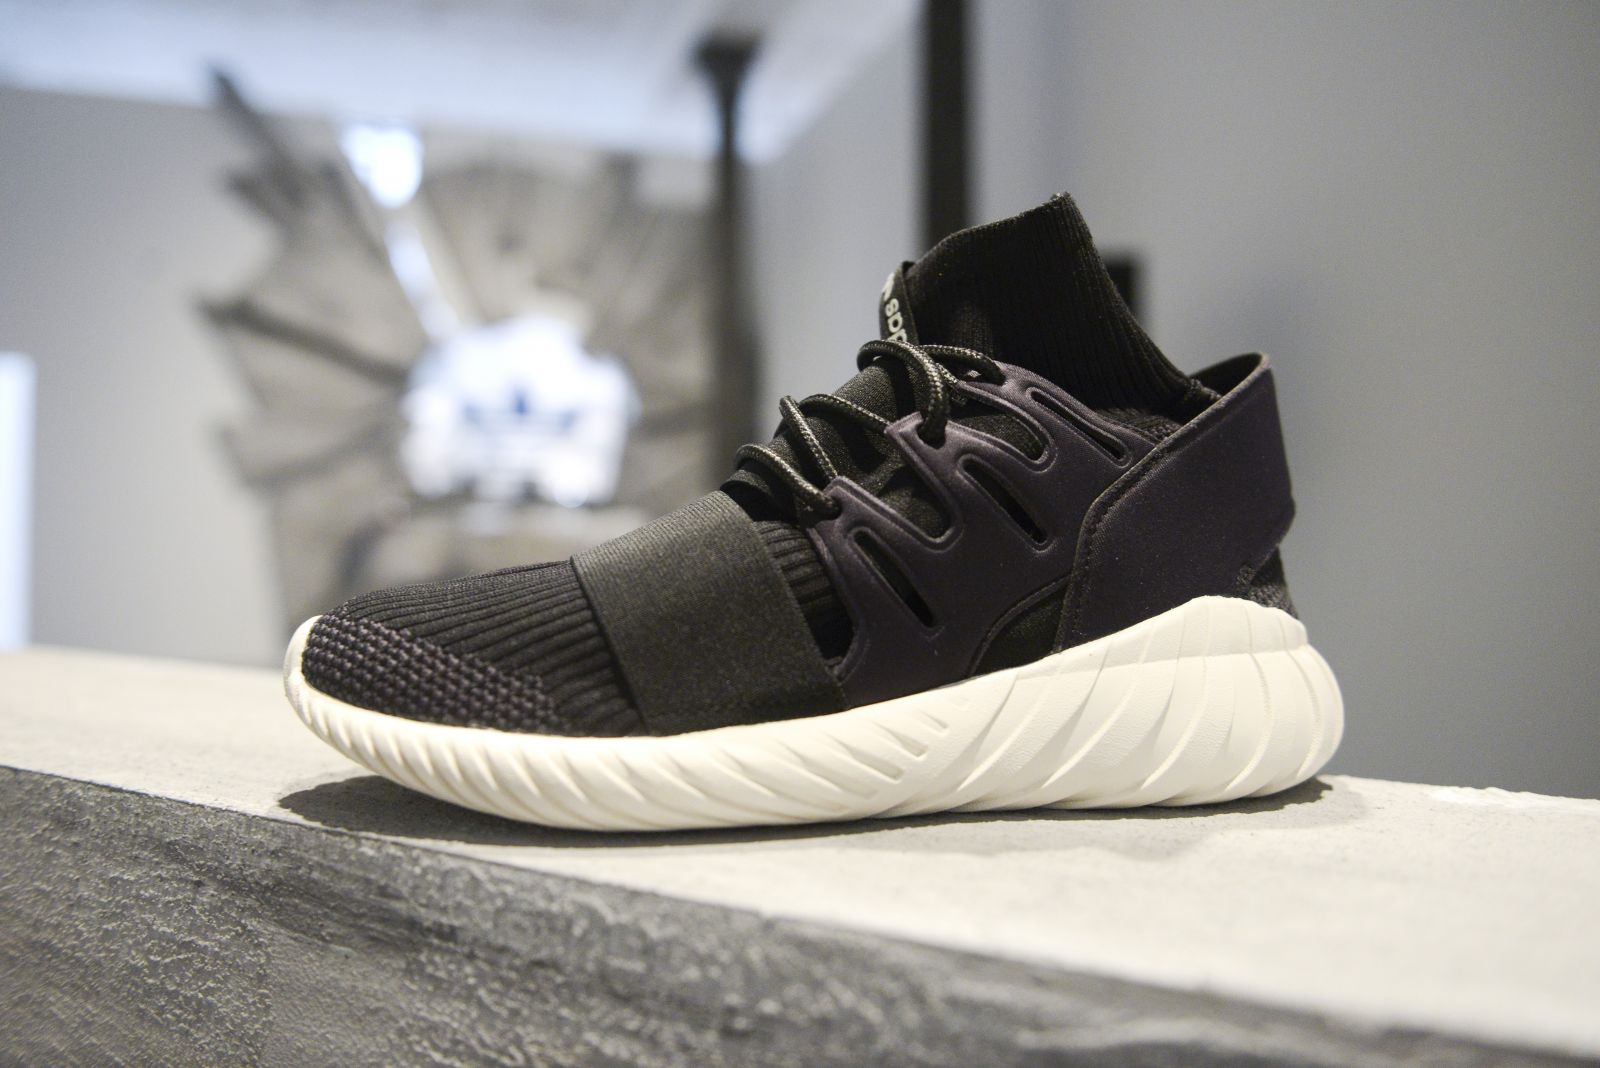 Adidas Tubular Radial CNY Shoes adidas Singapore